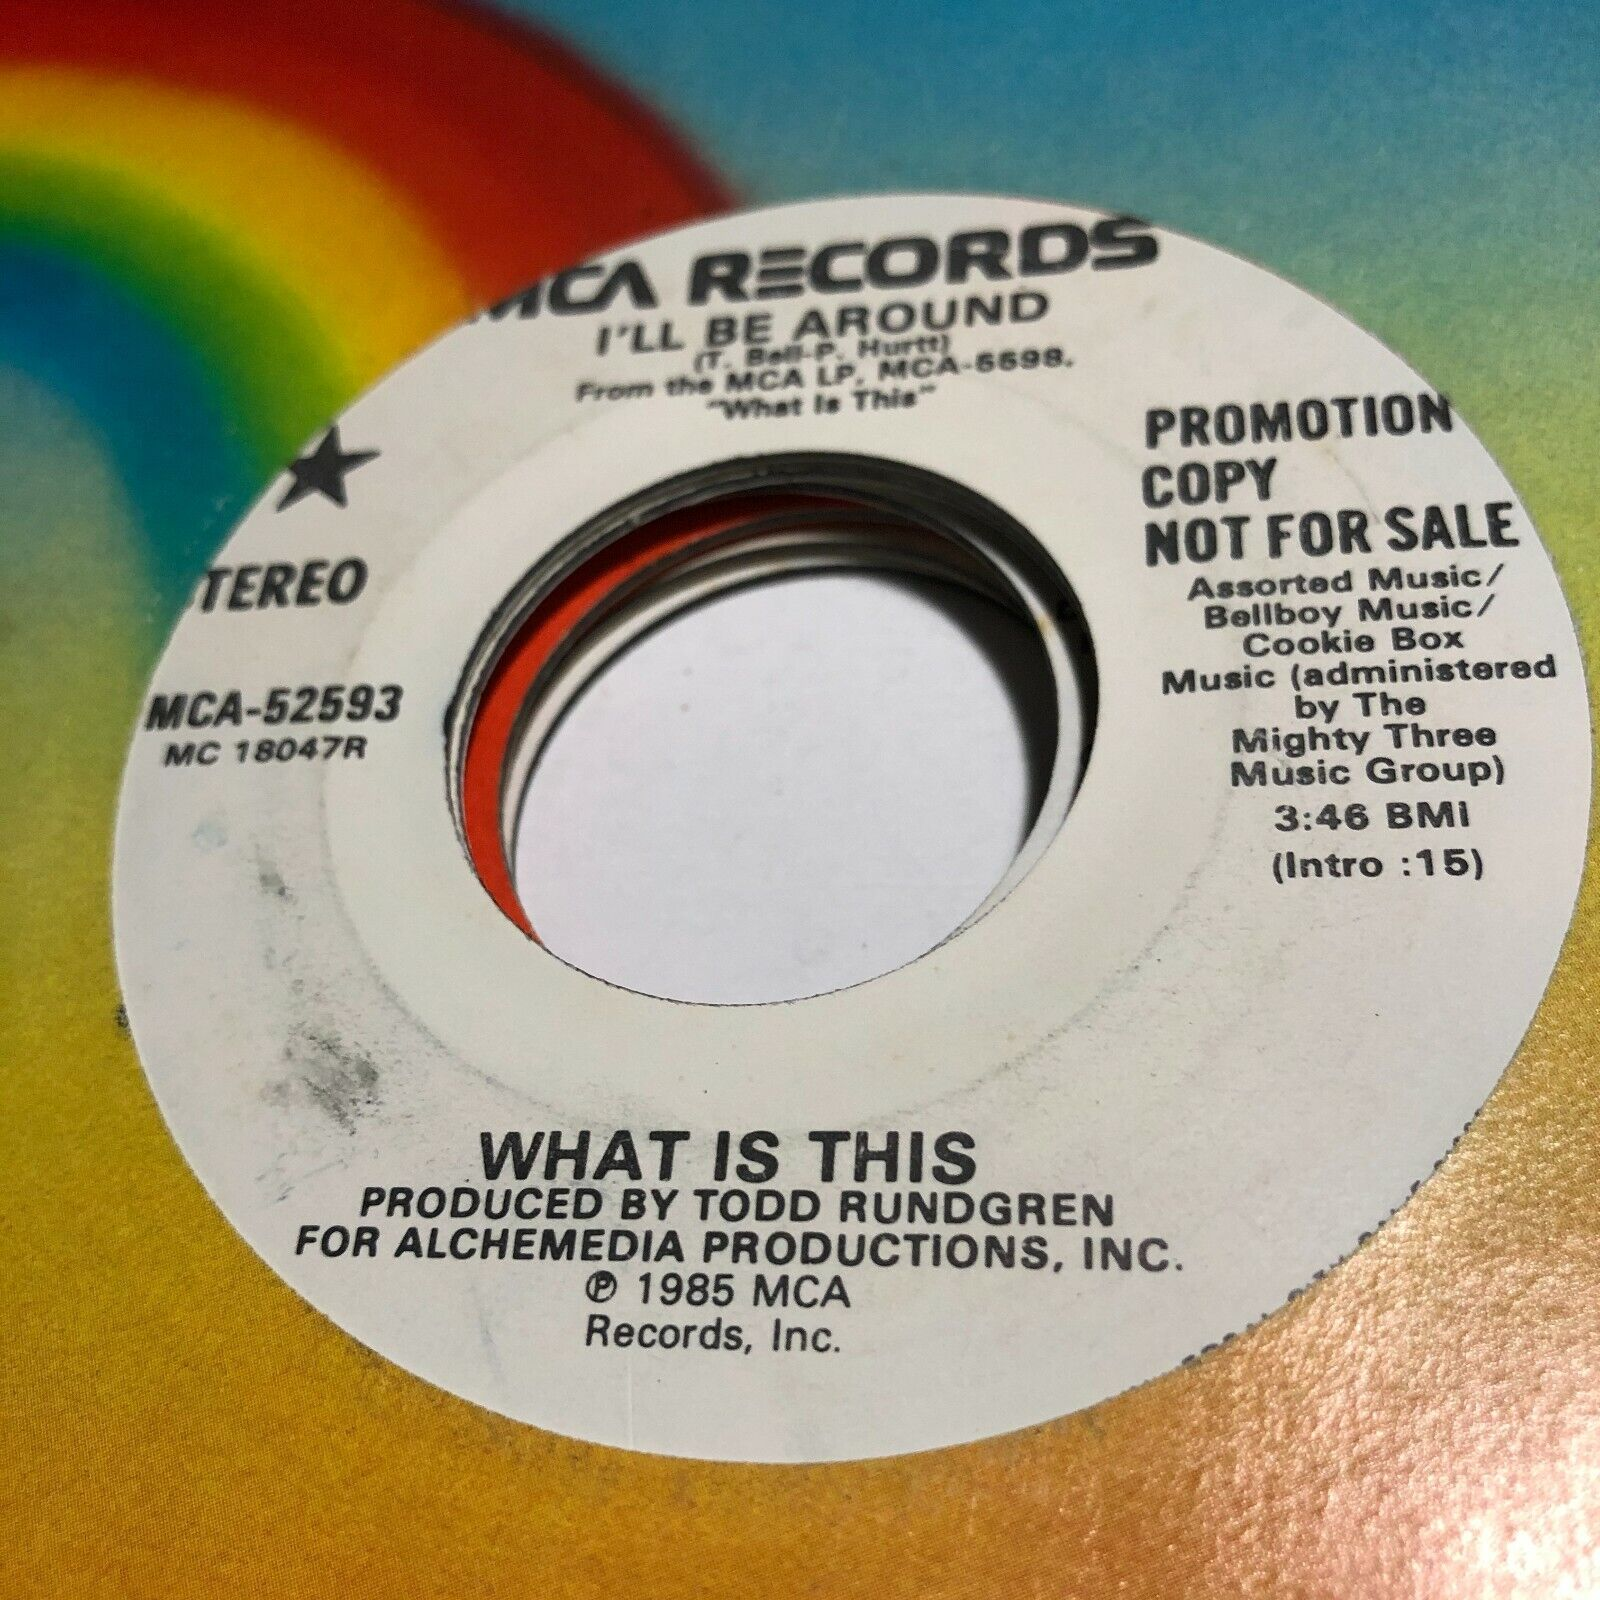 45RPM-KB060 What Is This I ll Be Around Same Flip MCA 52593 Promo 3.50 - $3.50